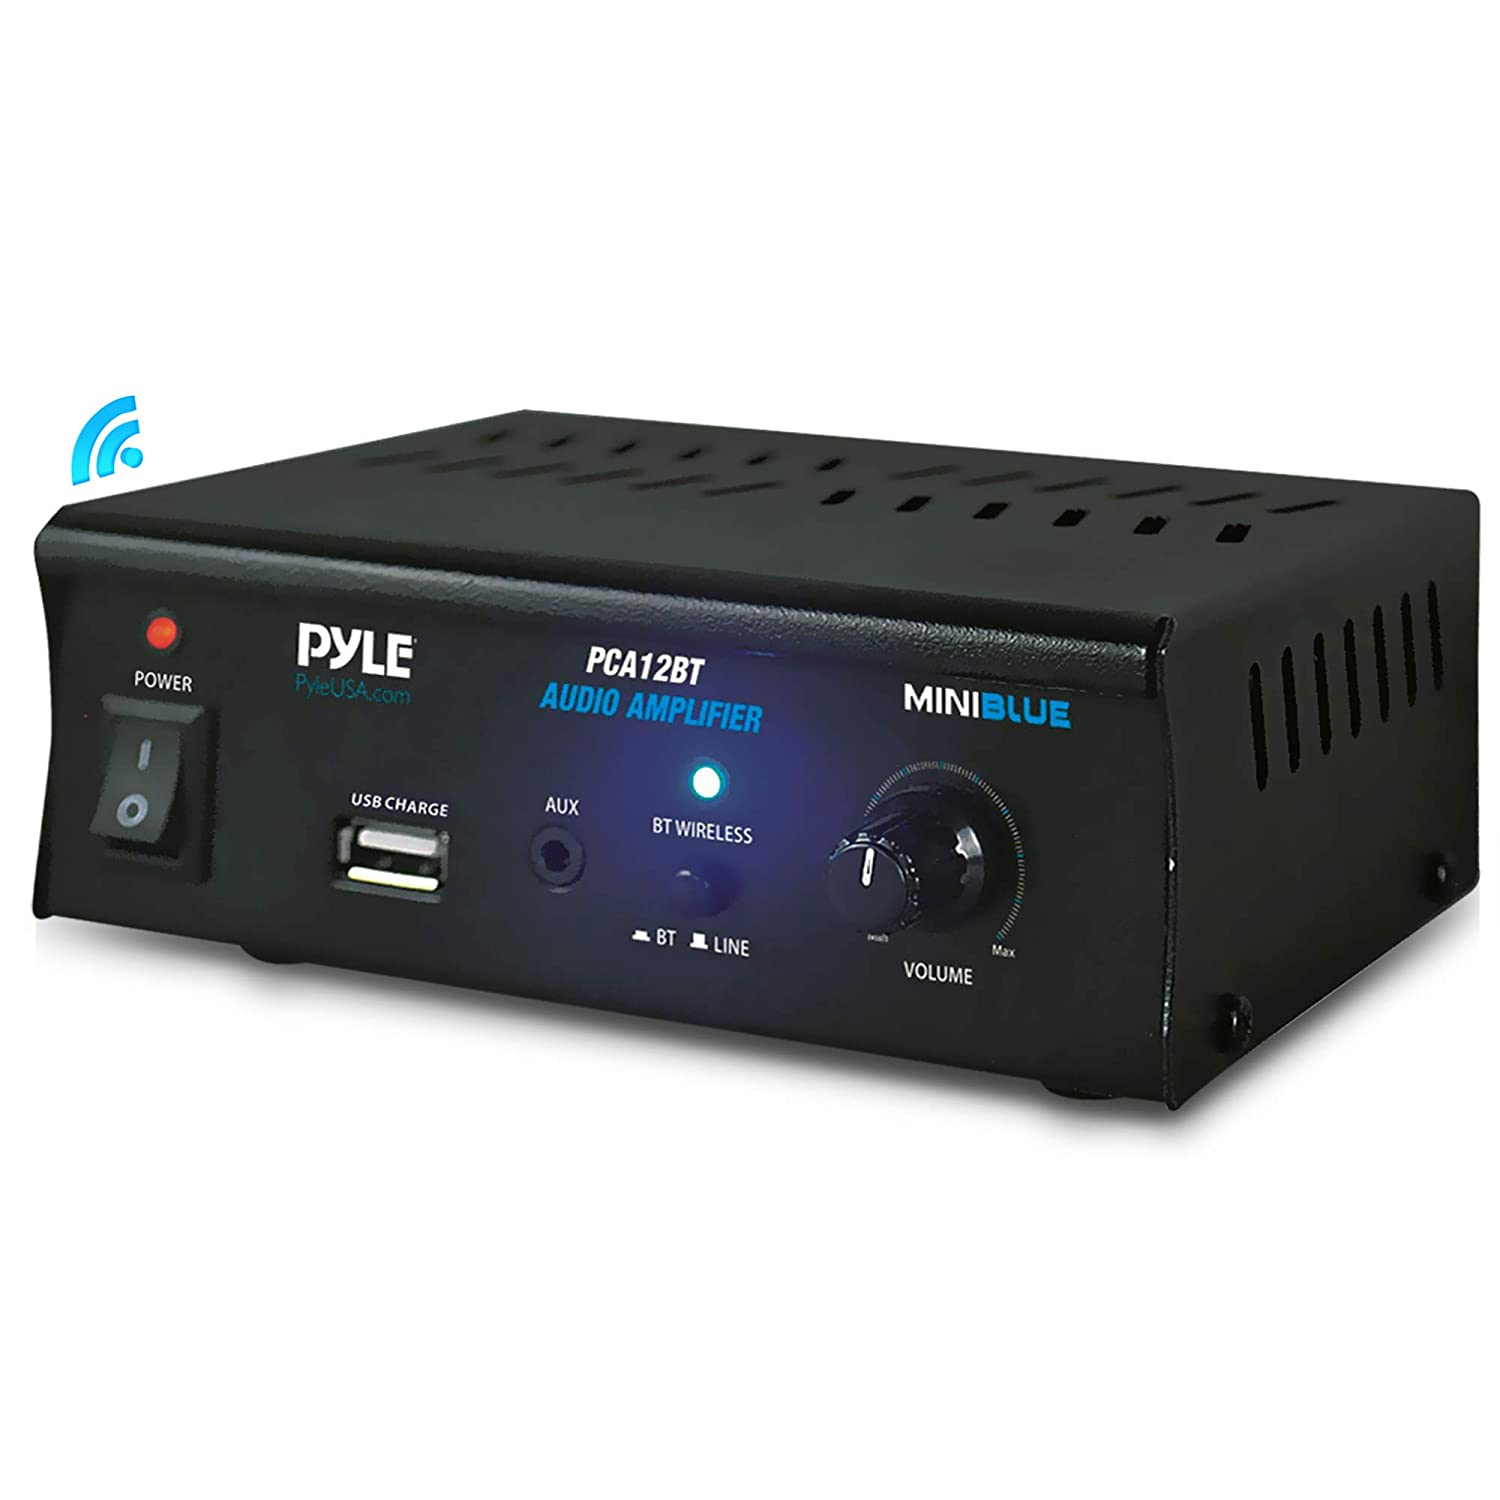 2x25 Watt Mini Power Amplifier - Portable Wireless Bluetooth Mini Home Stereo Audio Speaker Sound Stereo Receiver System for CD, MP3, iPhone Via AUX, USB, for Amplified Subwoofer Speakers - Pyle PCA12